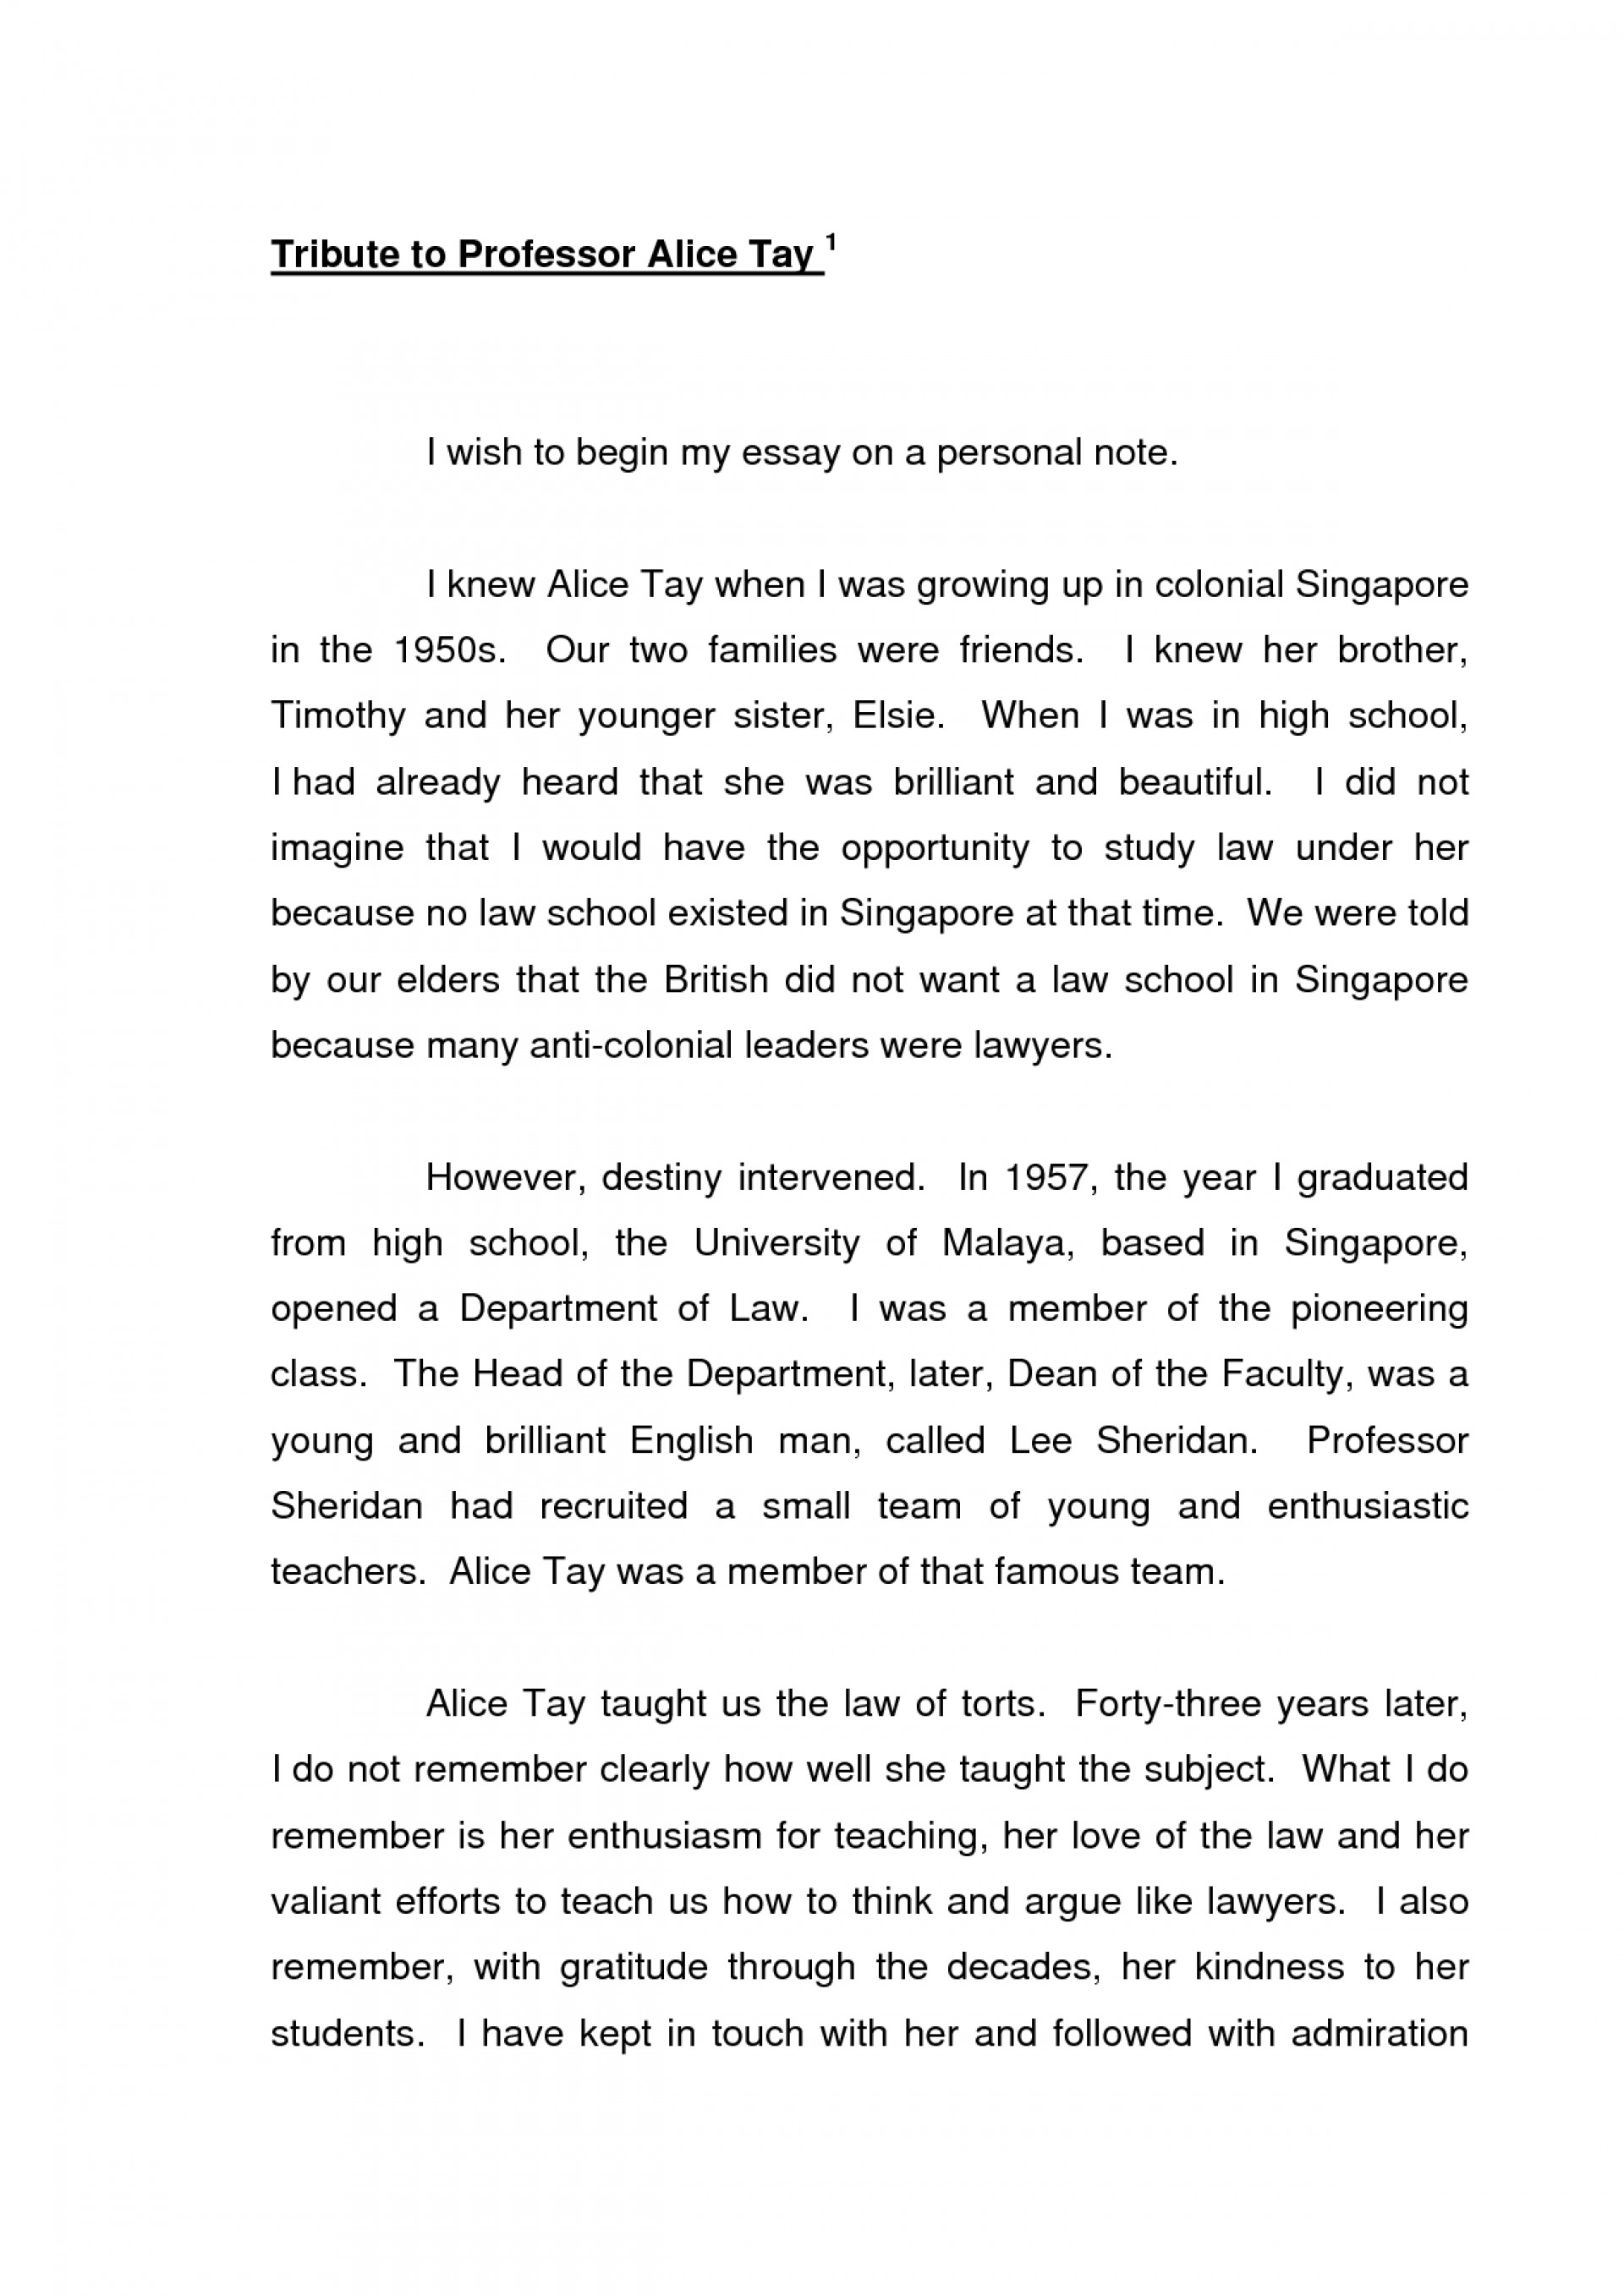 002 Essay Example How To Begin An Incredible Write On A Book You Didn't Read Open Paragraph Start About Yourself For College 1920